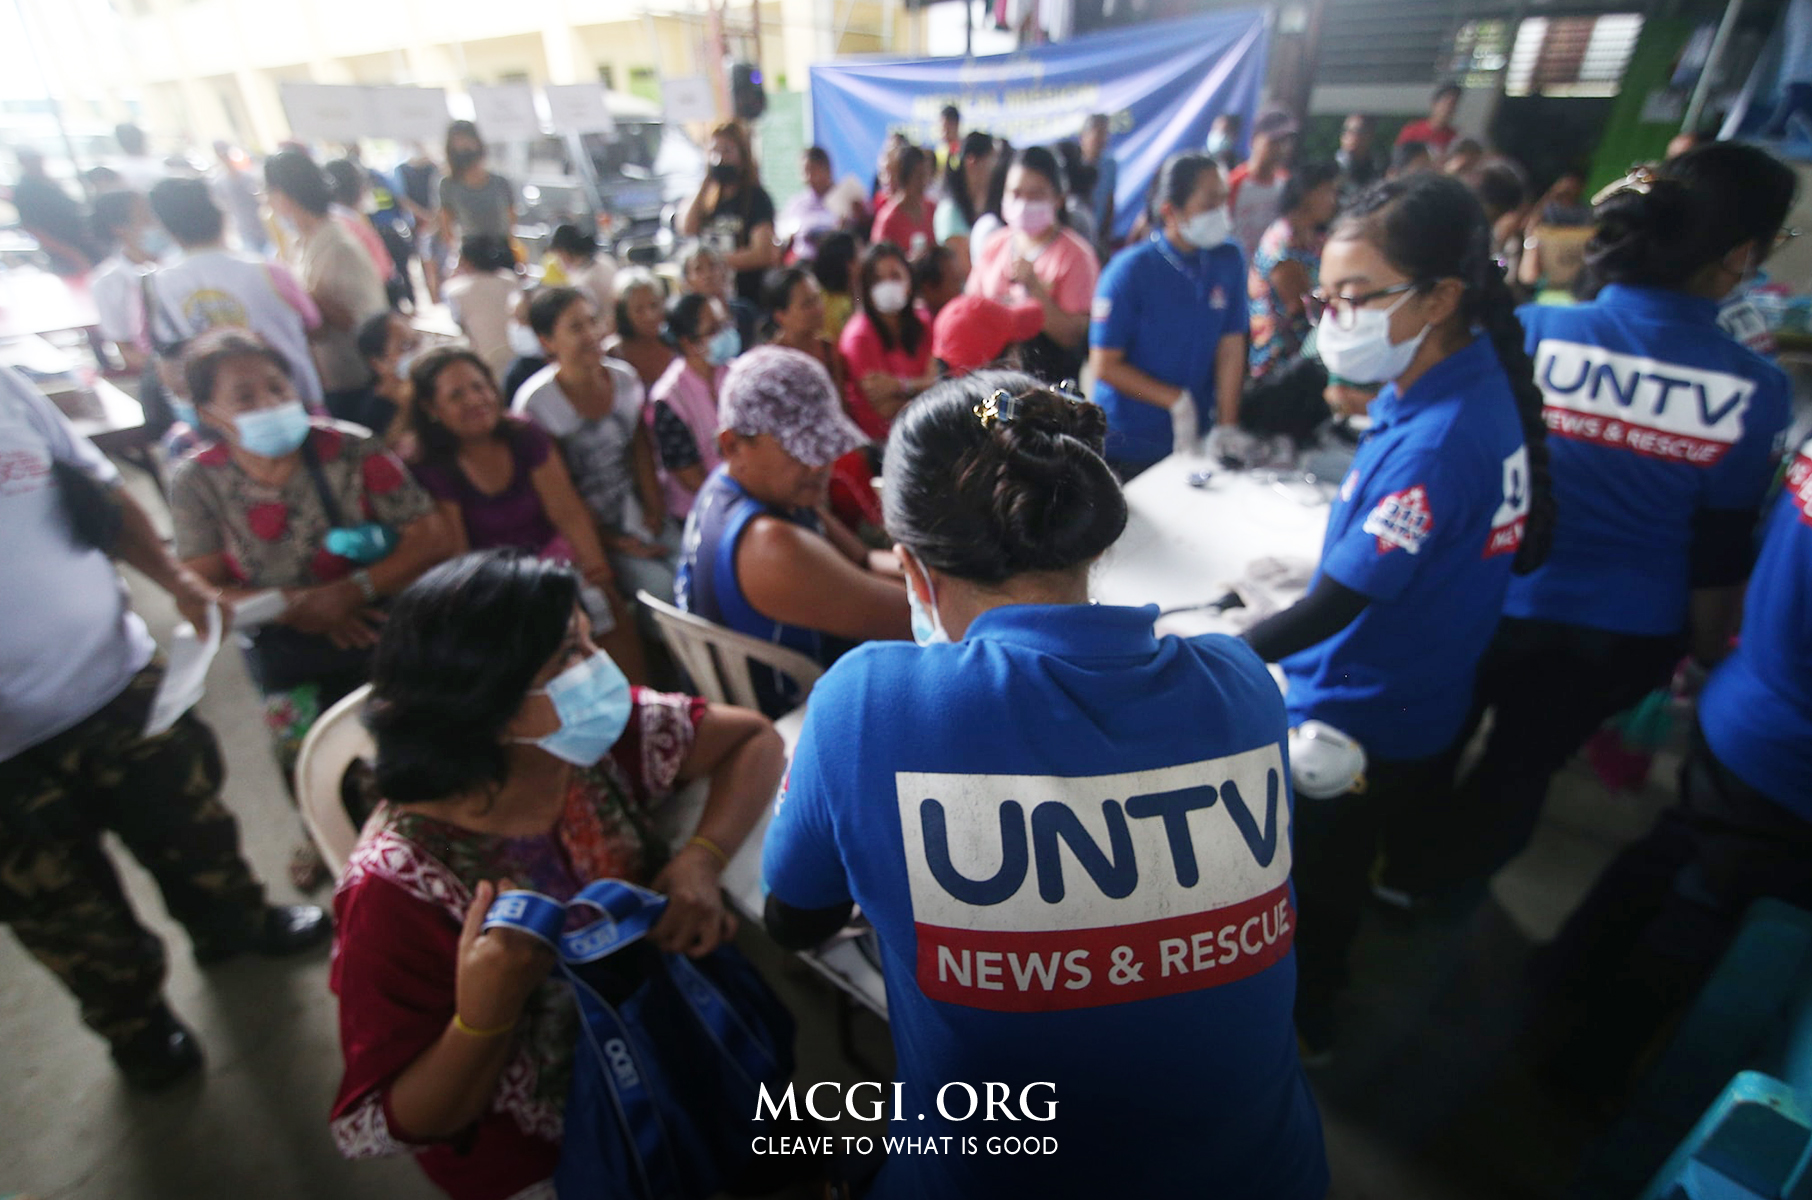 MCGI and UNTV Hold Week-Long Medical Mission and Relief Operation